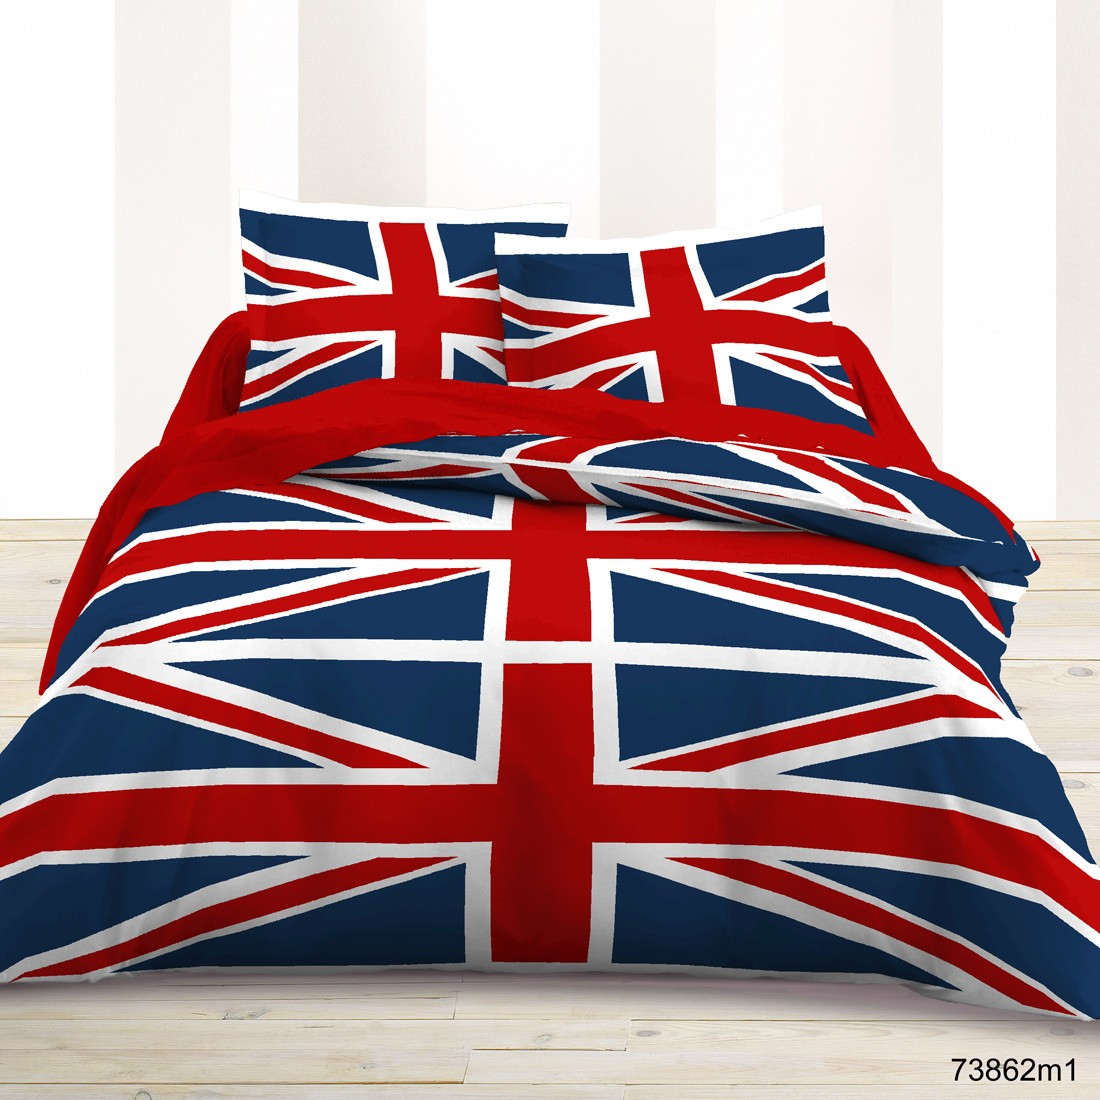 housse de canape union jack. Black Bedroom Furniture Sets. Home Design Ideas